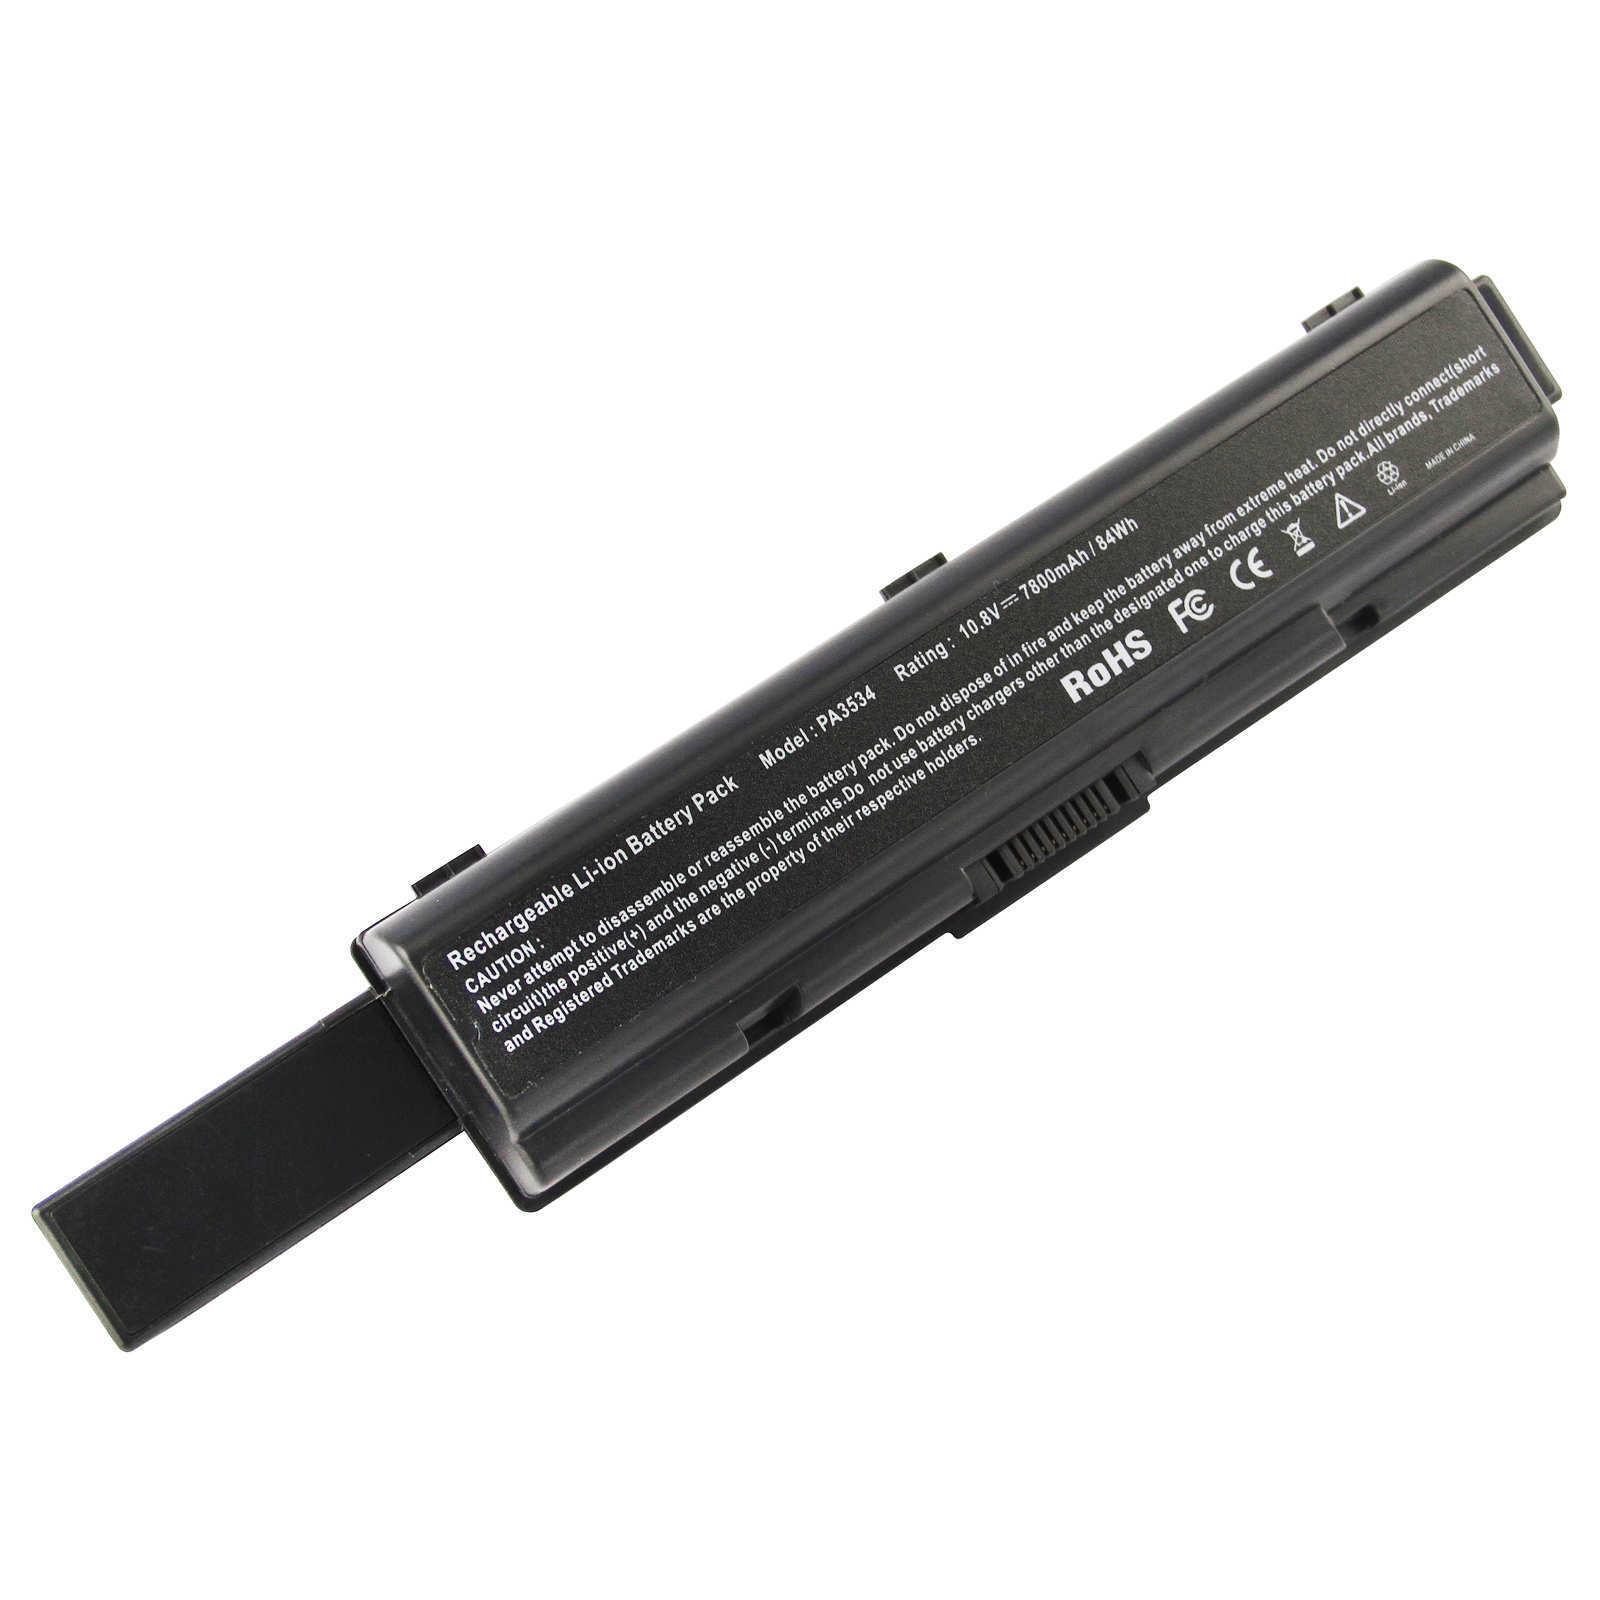 Replacement Toshiba Satellite A500-ST5608 Battery